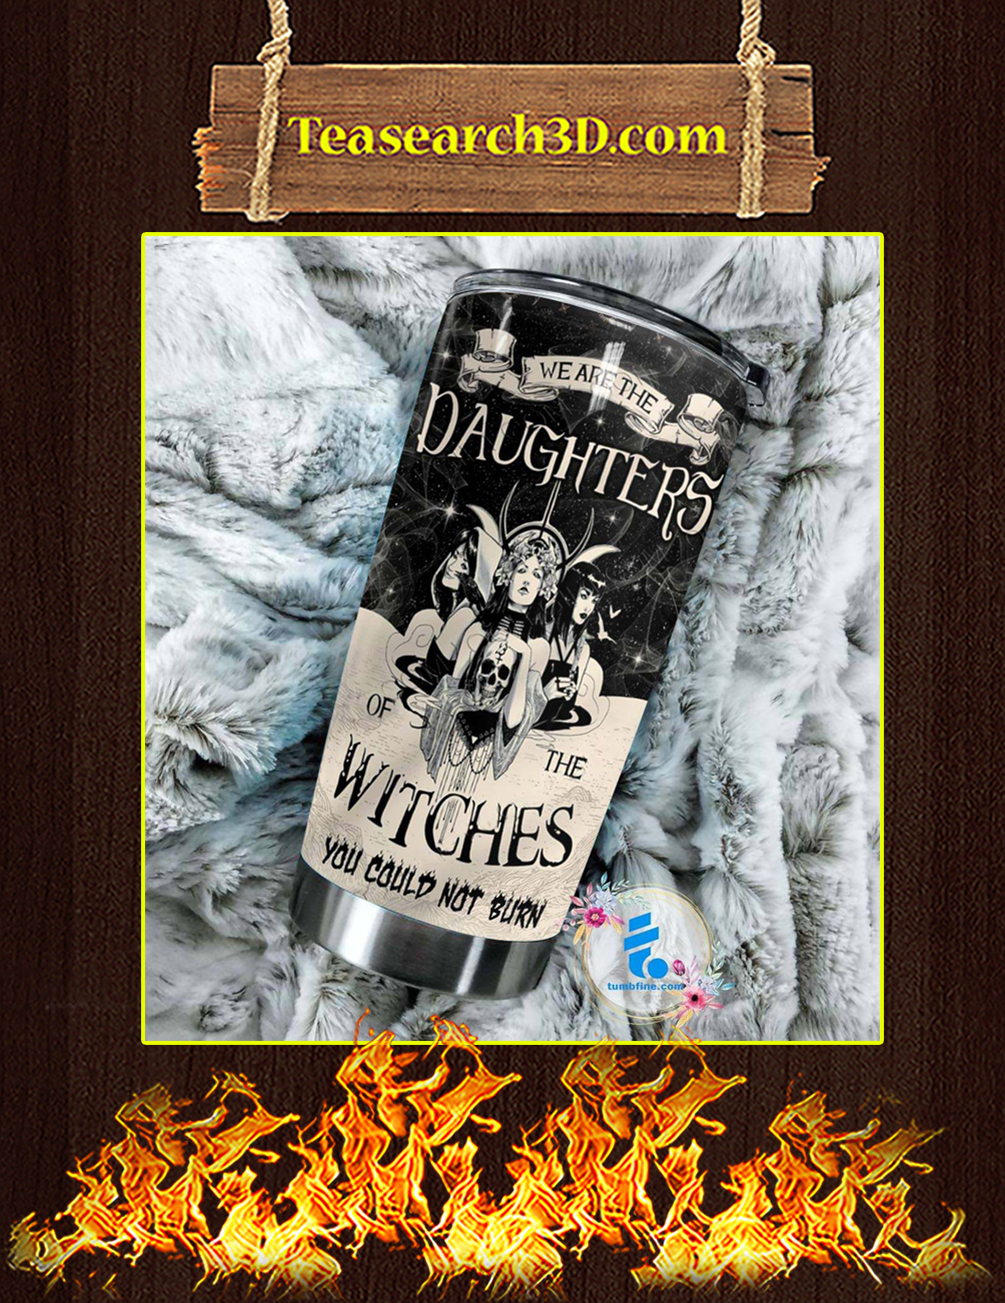 Daghters Of The Witches Personalized Custom Name Tumbler Pic 1